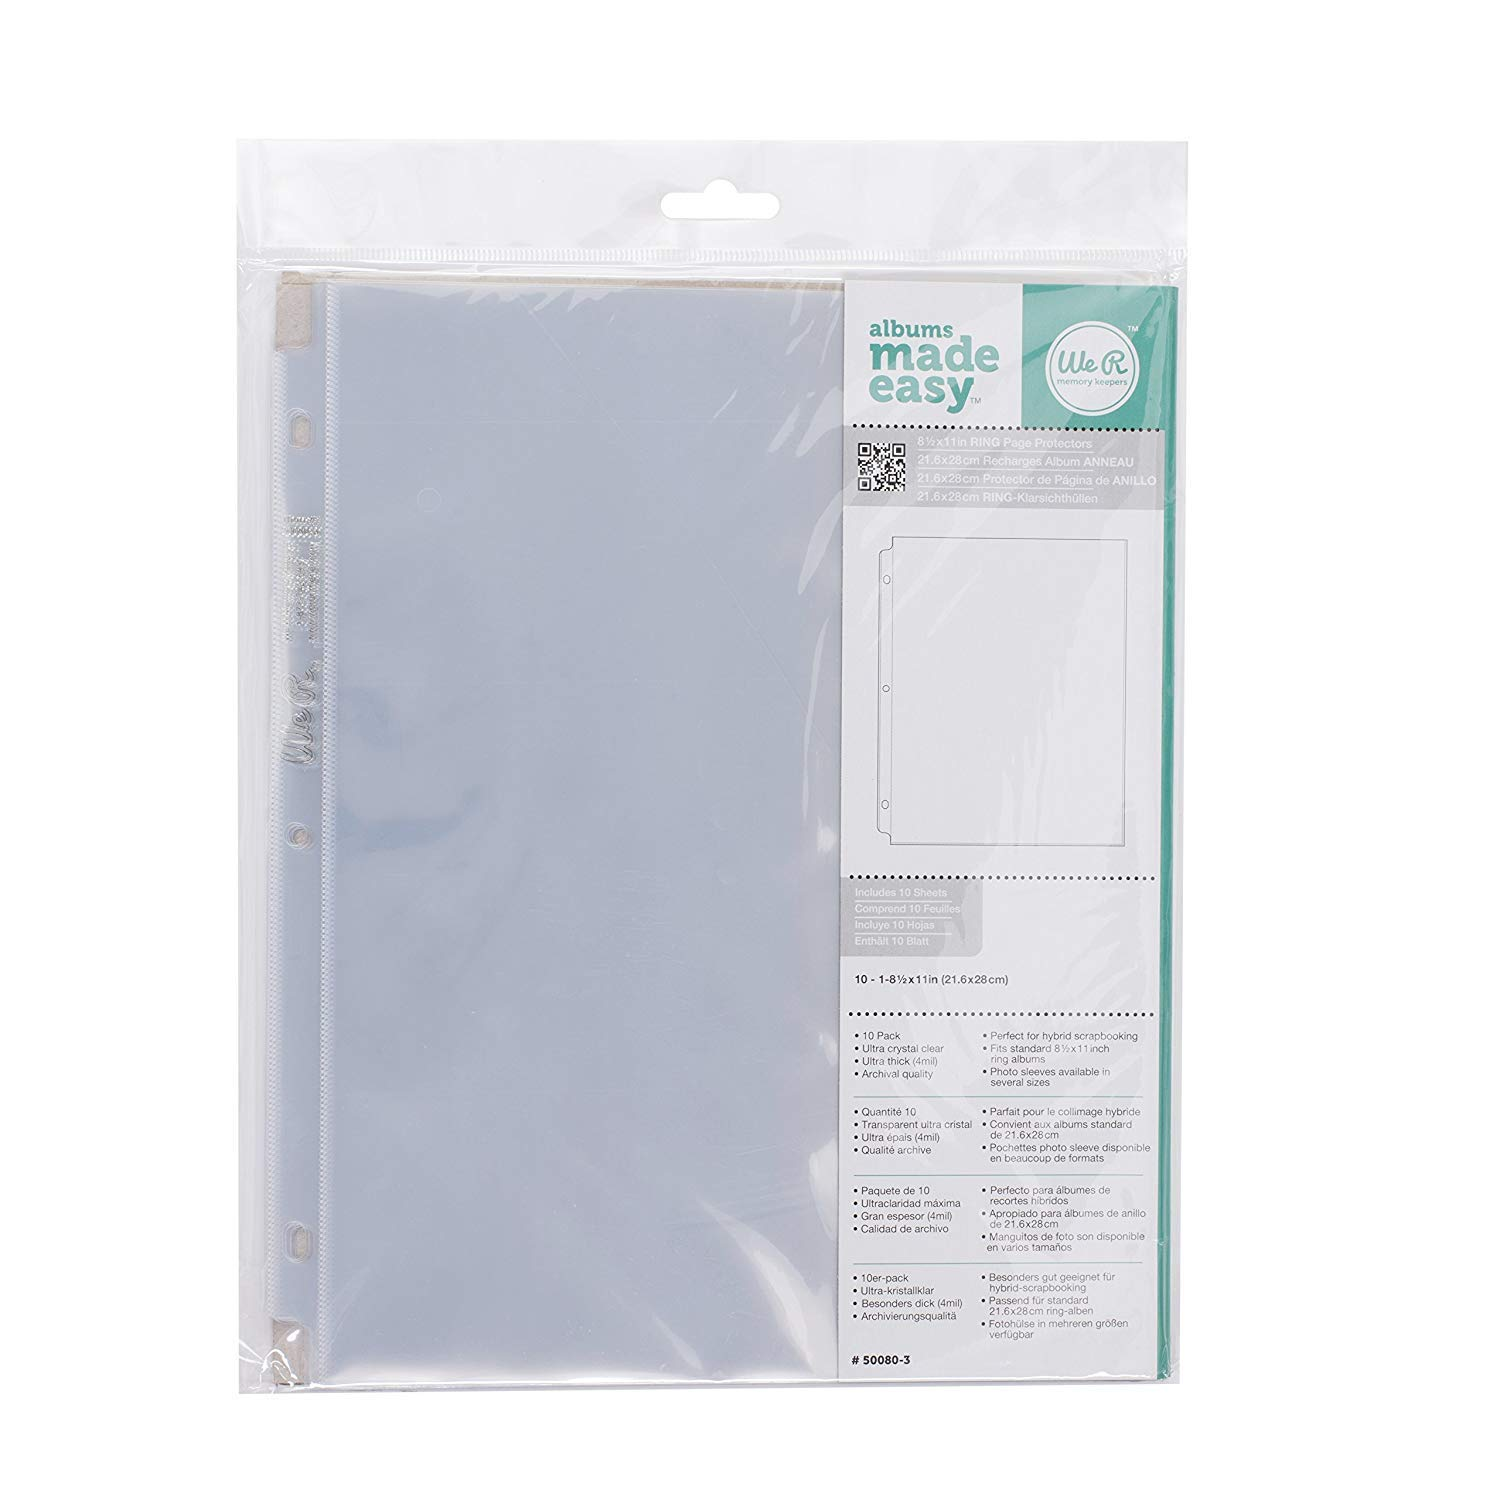 8.5 x 11-inch 3-Ring Album Page Protectors by We R Memory Keepers | 10 pack (Limited Edition) We R Memory Keeper.